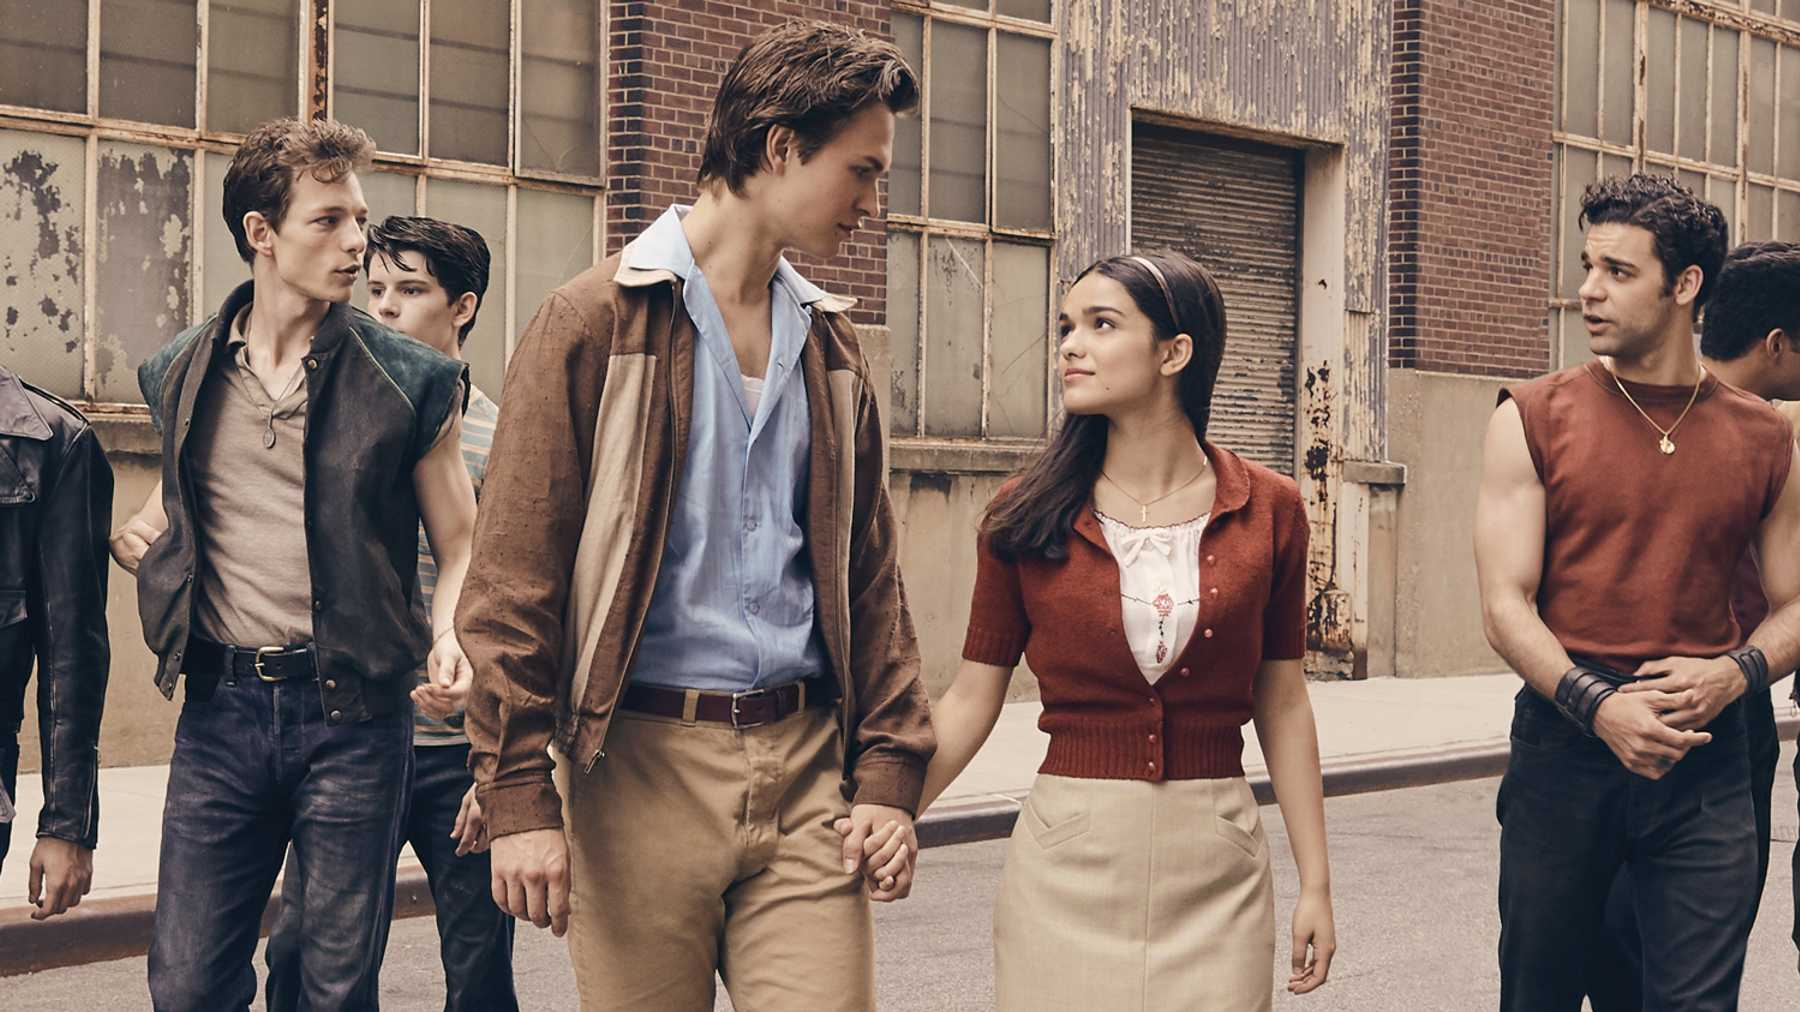 Steven Spielberg is remaking West Side Story most anticipated films 2020